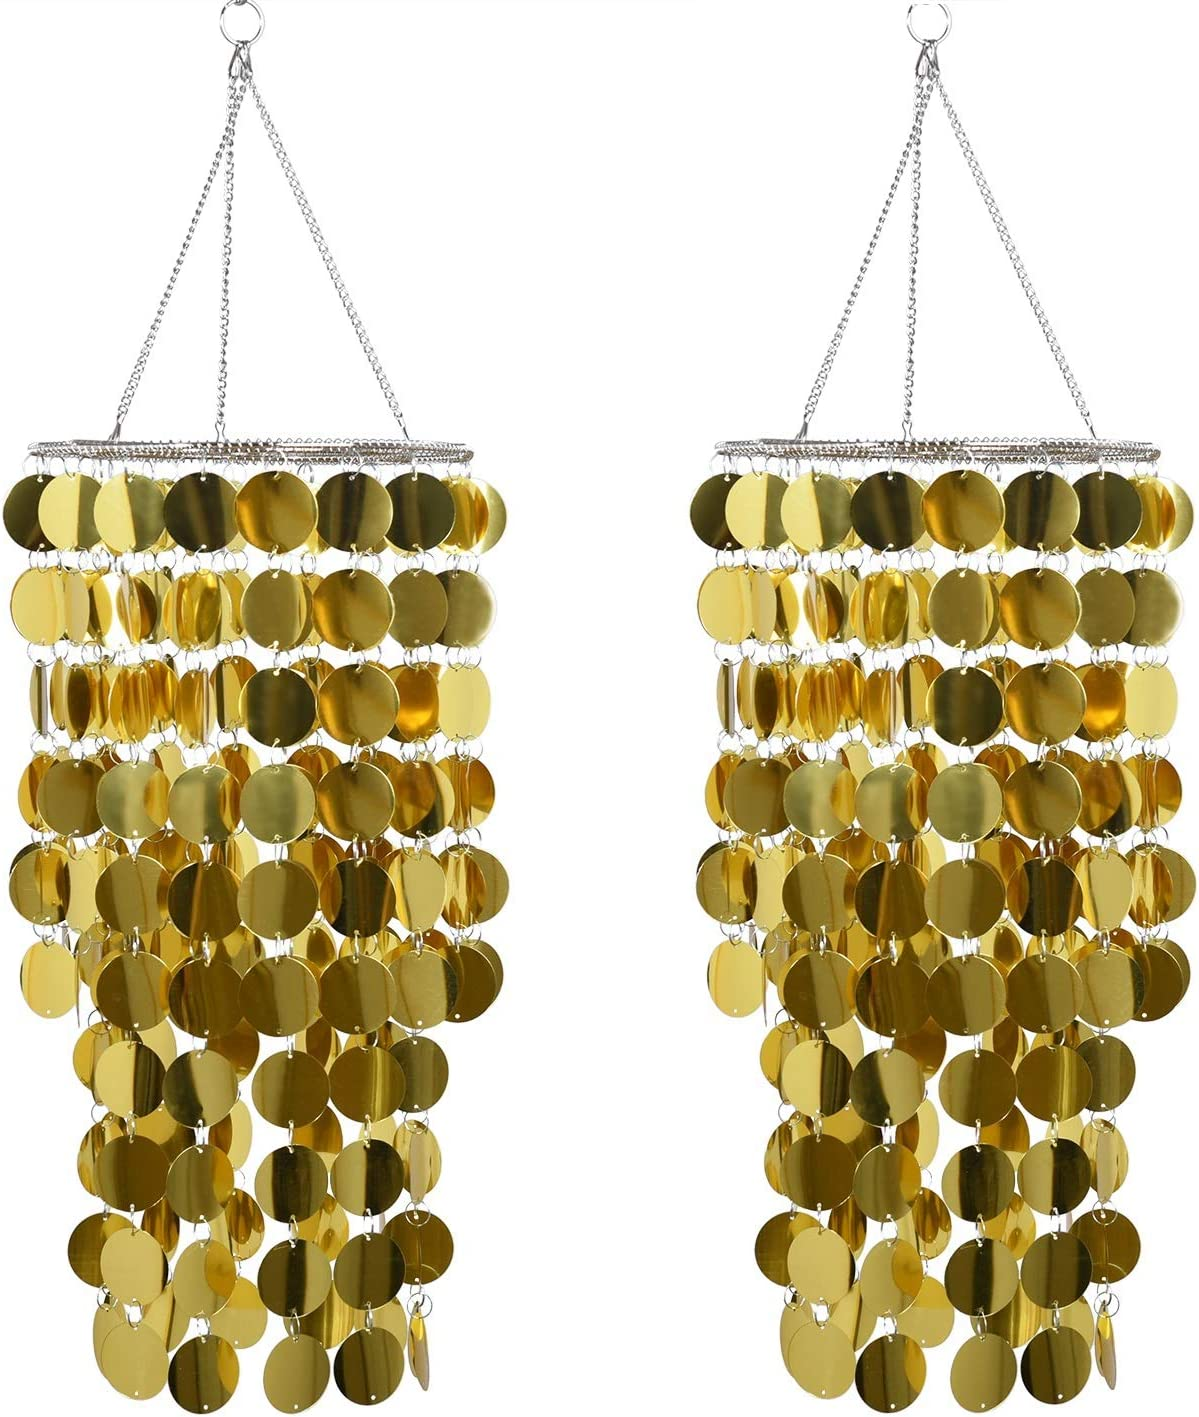 2pcs Gold Bling Hanging Chandelier,W8.5 H18 ,Great idea for Wedding Chandeliers Centerpieces Decorations and Any Event Party Decor (Gold-2 pcs)